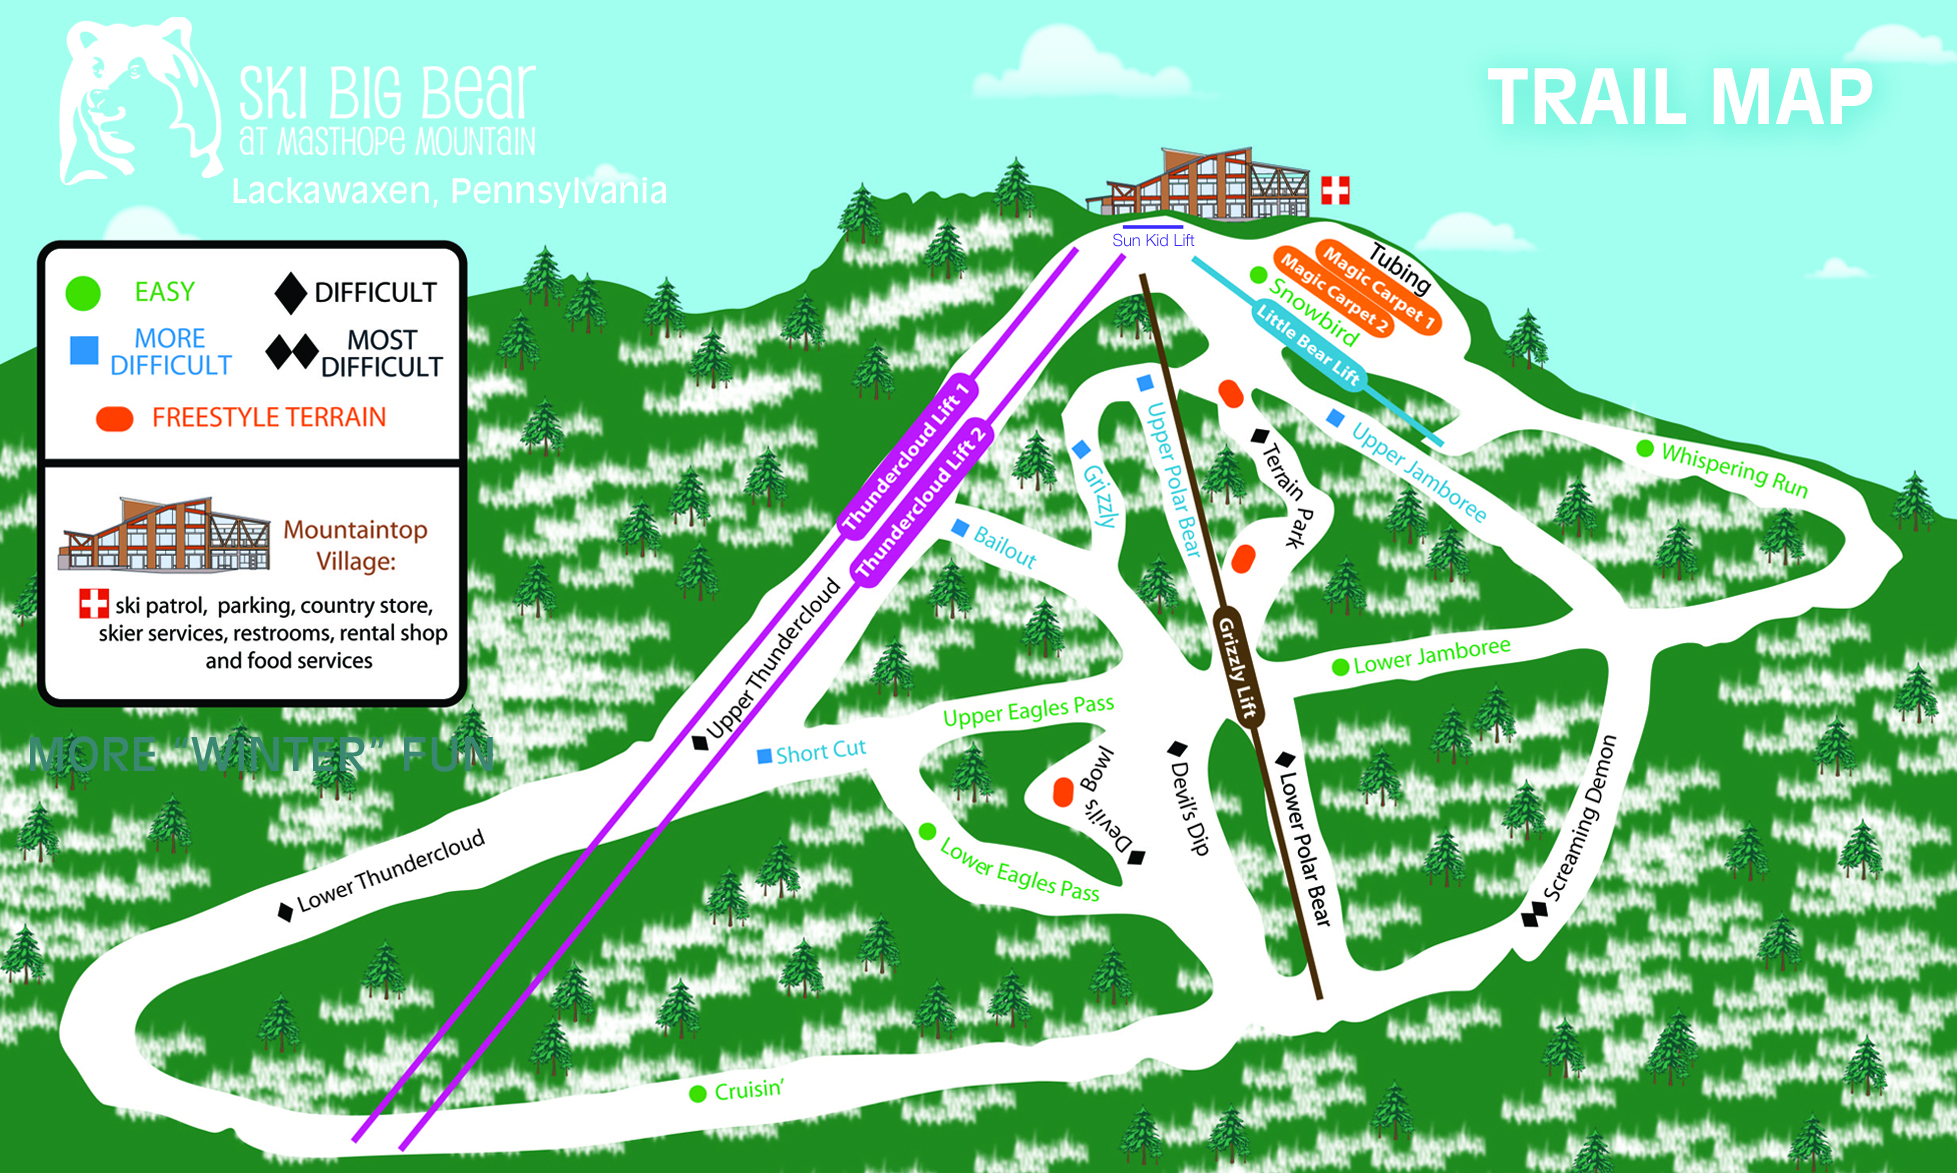 ski big bear trail map | onthesnow